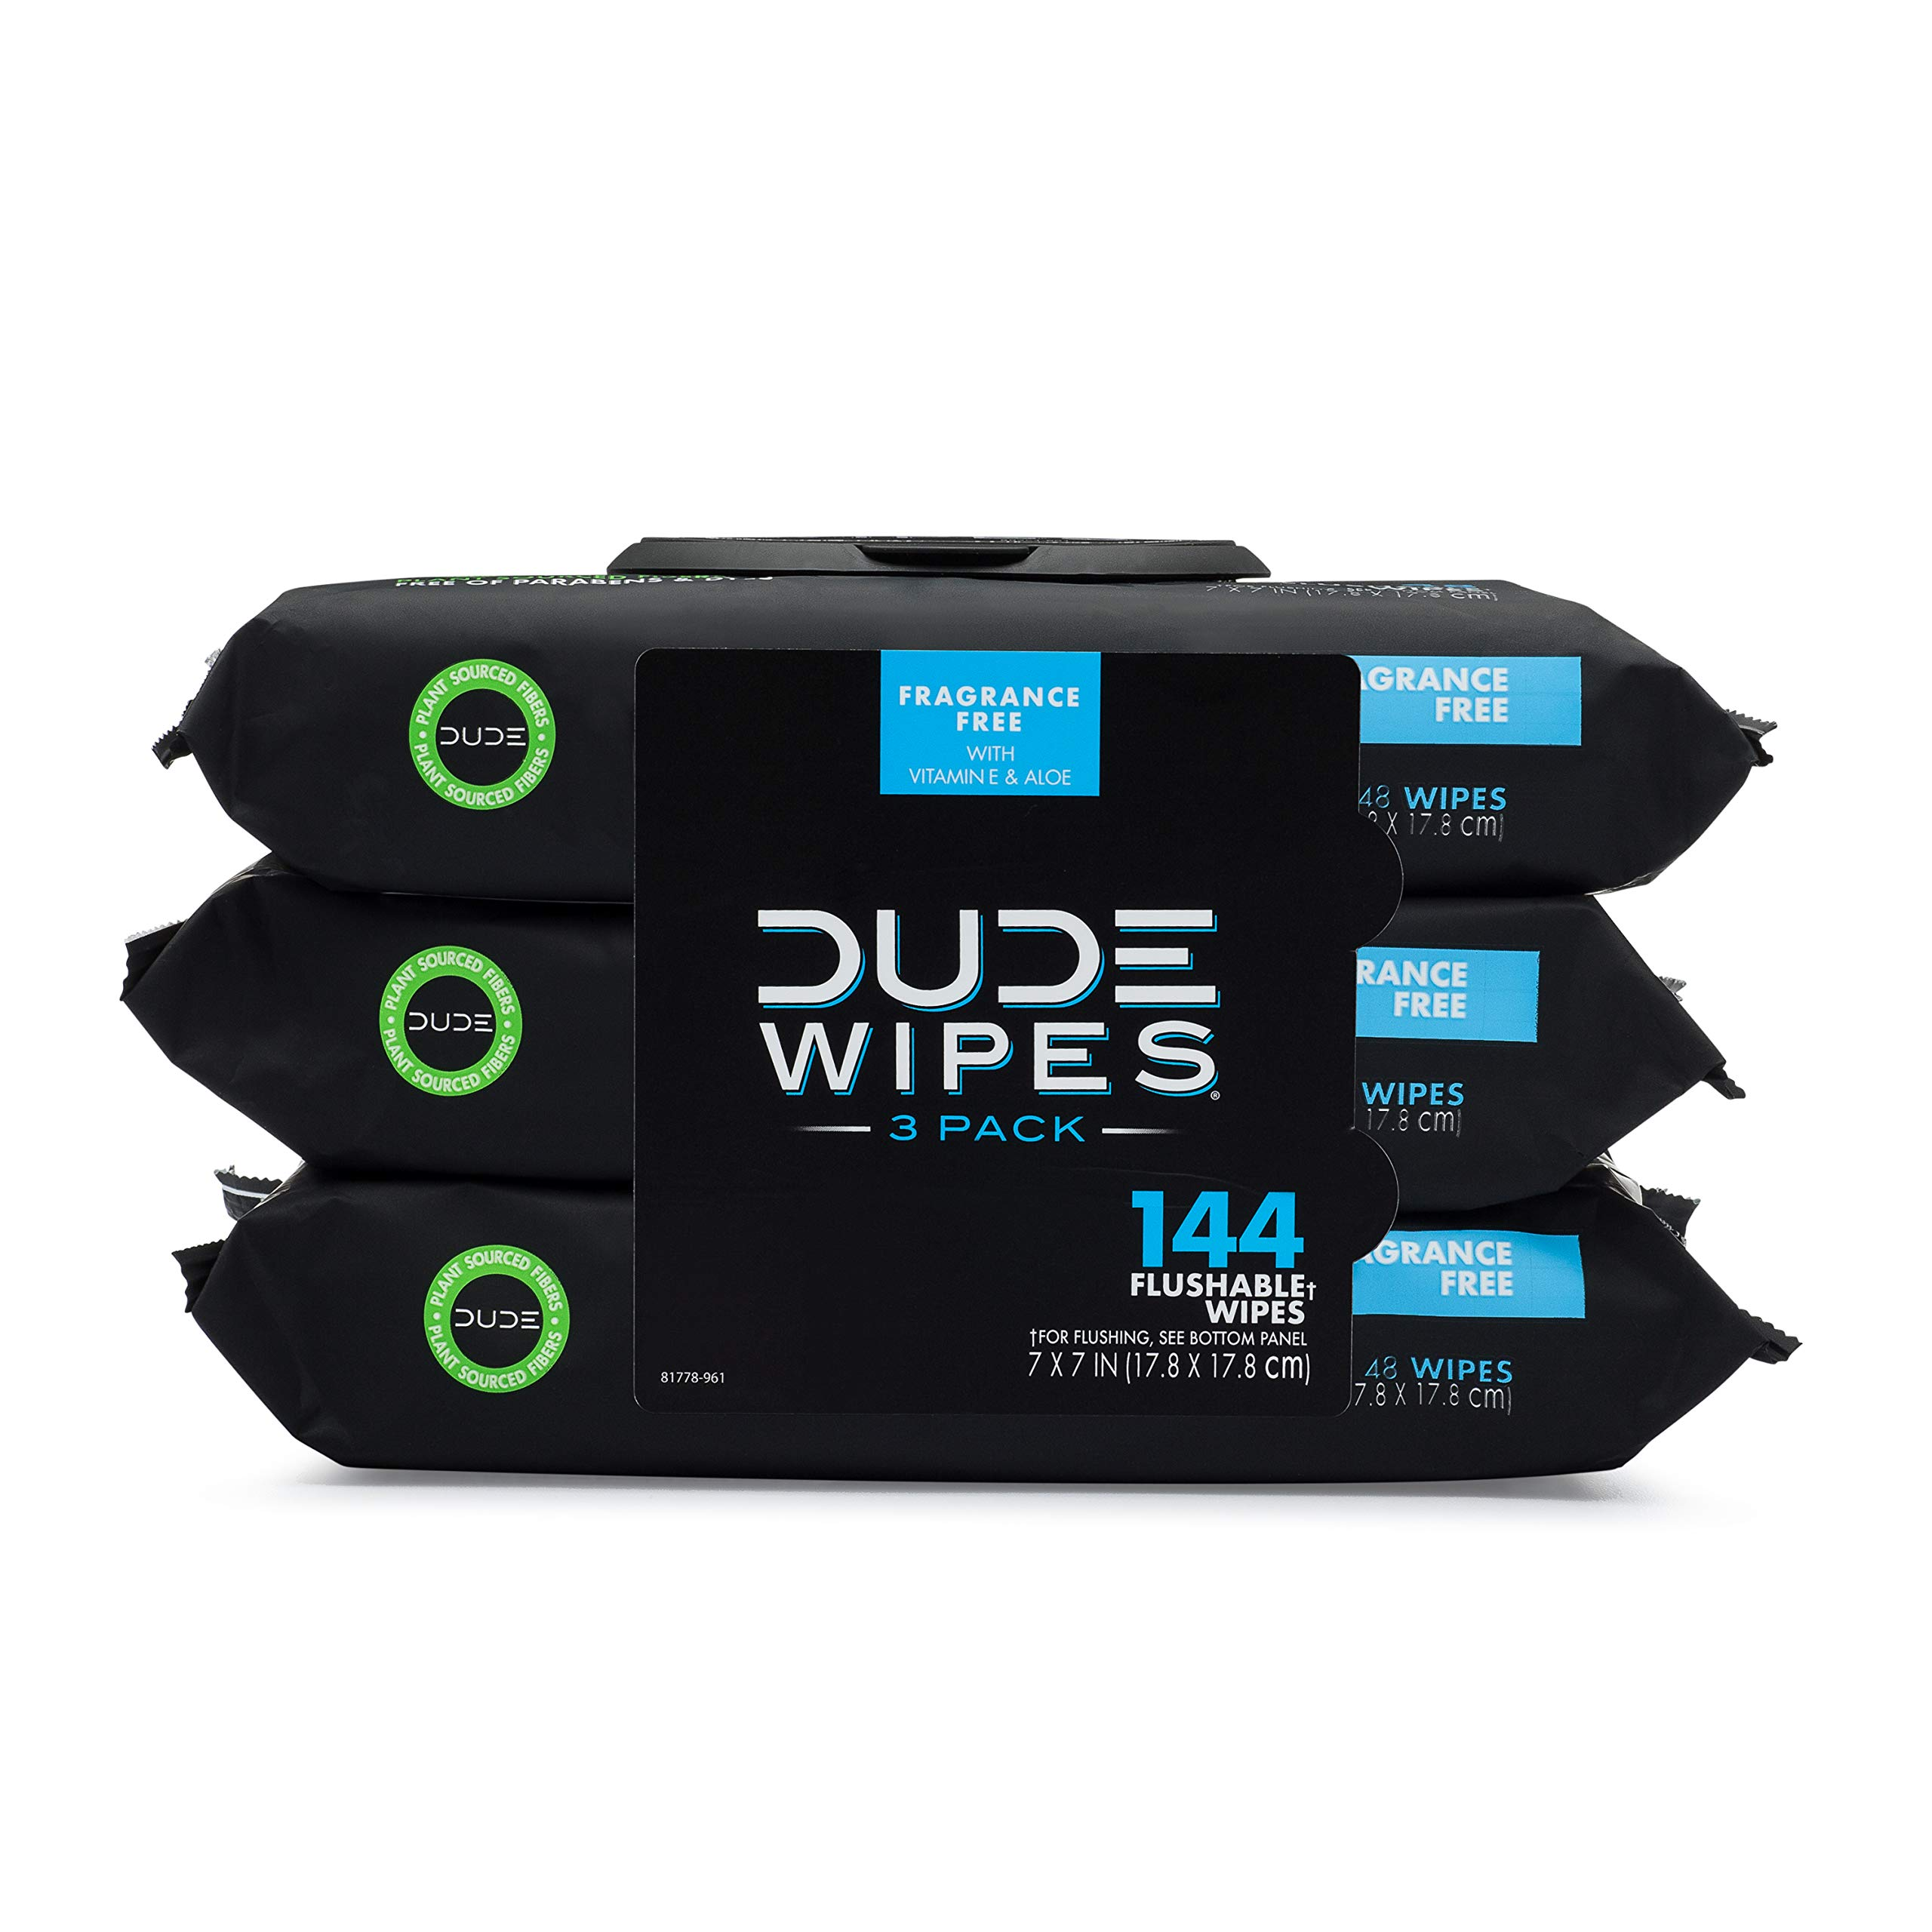 Dude Wipes Flushable Wipes Dispenser (3 Packs 48 Wipes), Unscented Wet Wipes with Vitamin-E & Aloe for at-Home Use, Septic and Sewer Safe, 48 Count (Pack of 3)